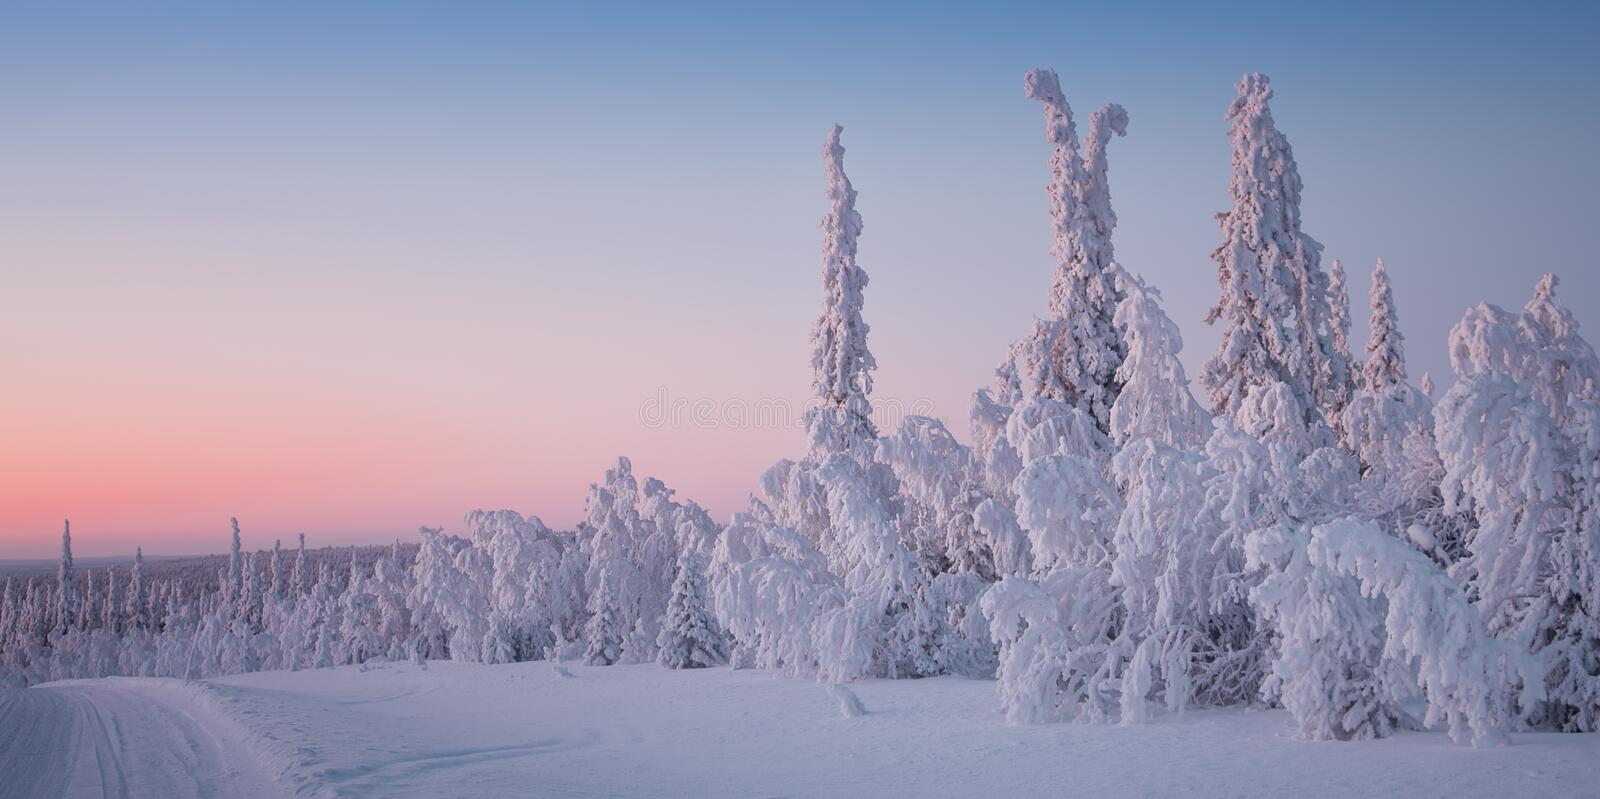 Beautiful winter landscape in Lapland Finland royalty free stock photos